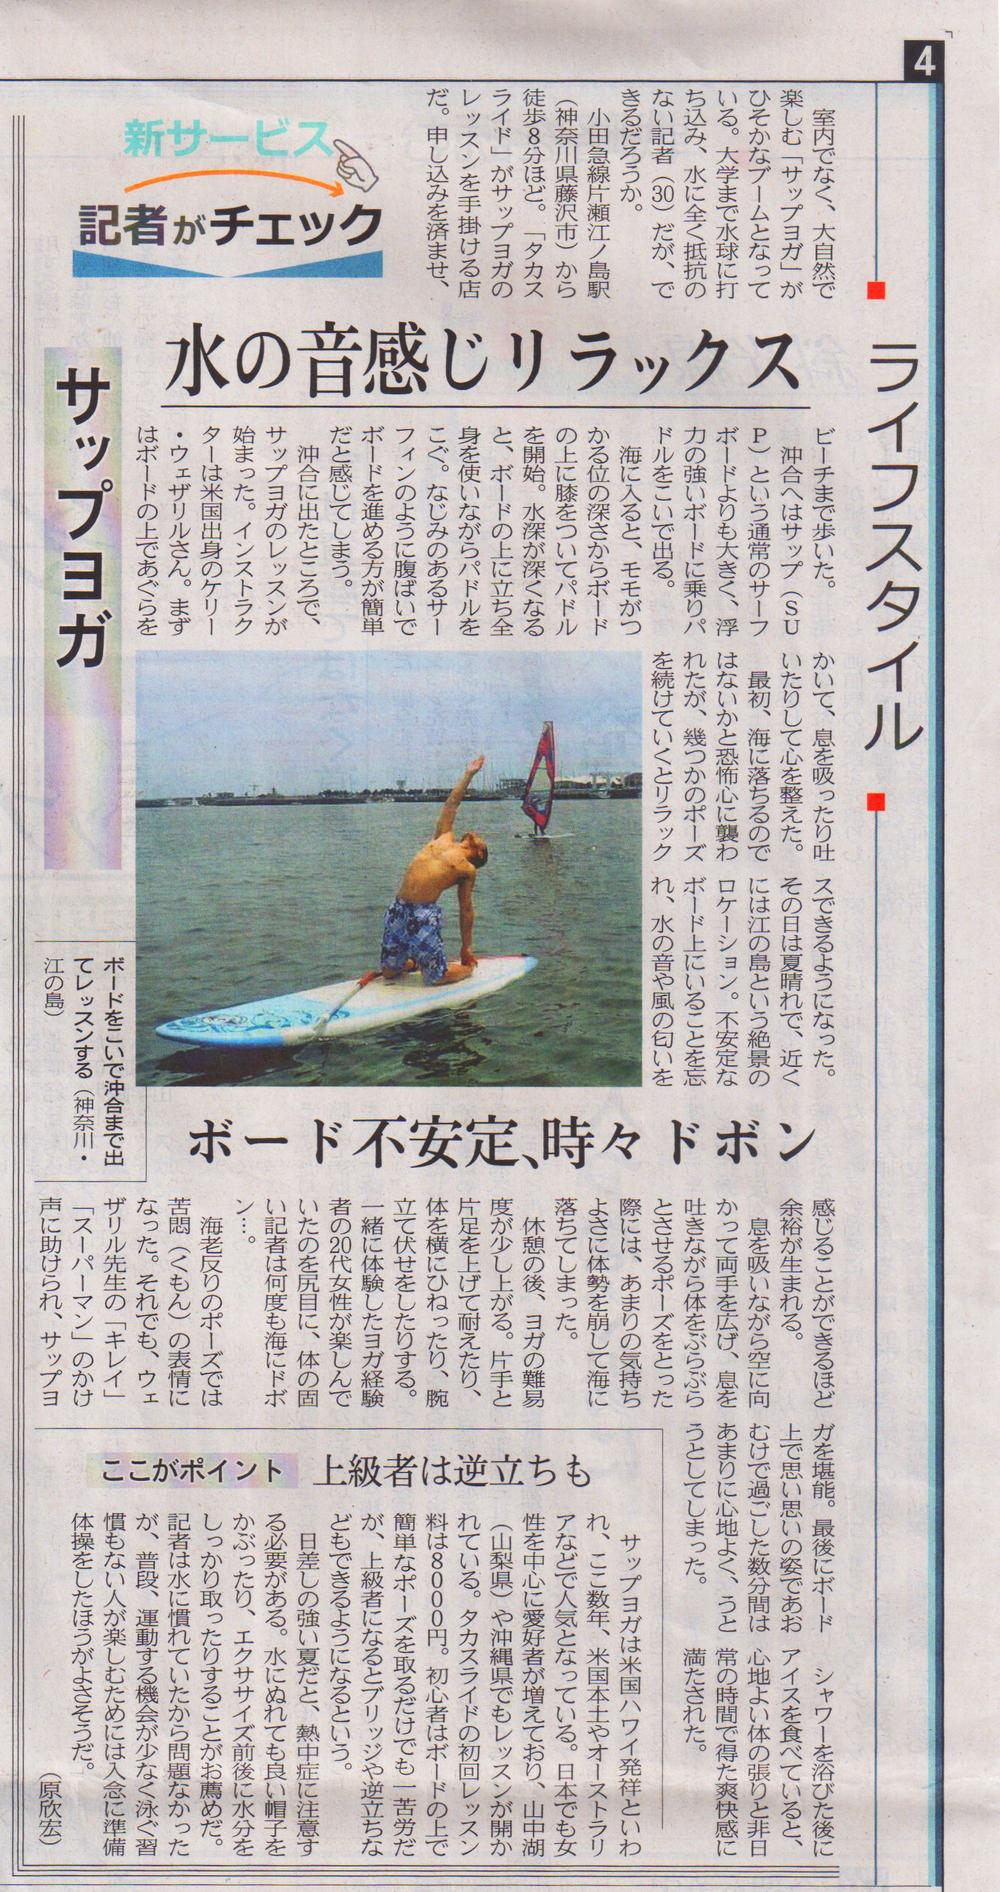 SUP yoga by  Kelly Wetherille  at  Taka Slide  featured in the national Nikkei MJ newspaper on July 18, 2016.